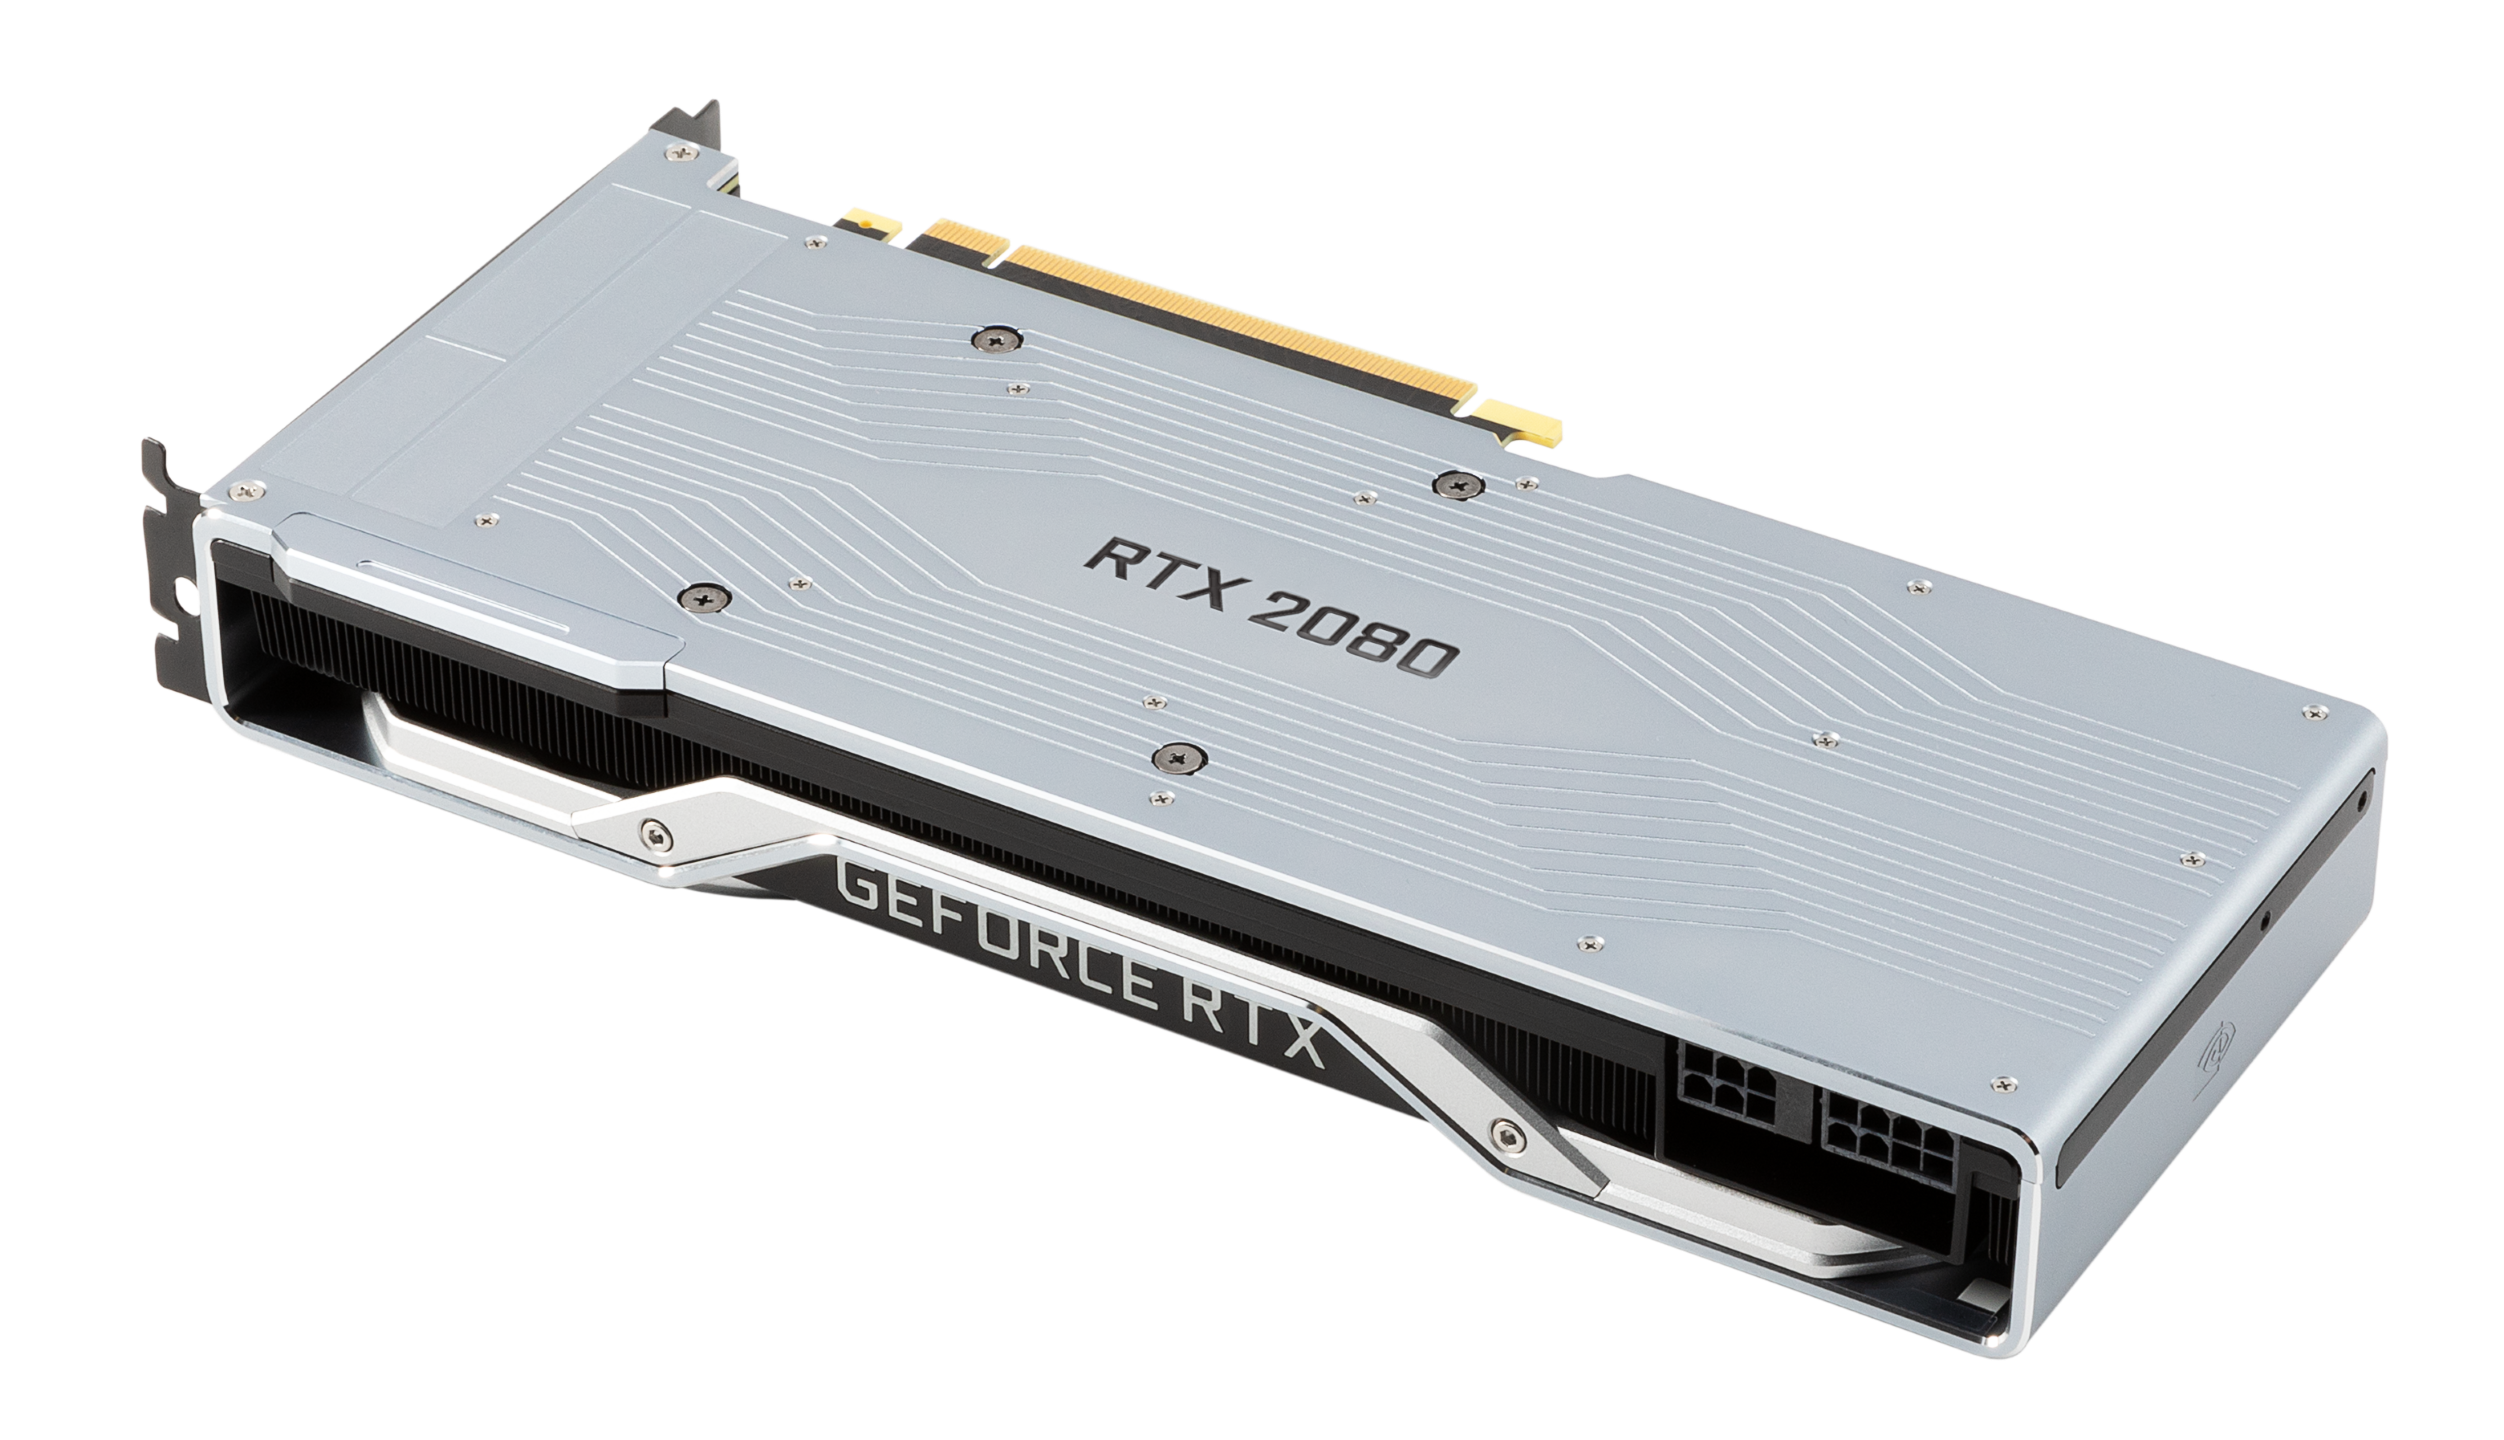 NVIDIA GeForce RTX 2080 Founders Edition Cooler and PCB